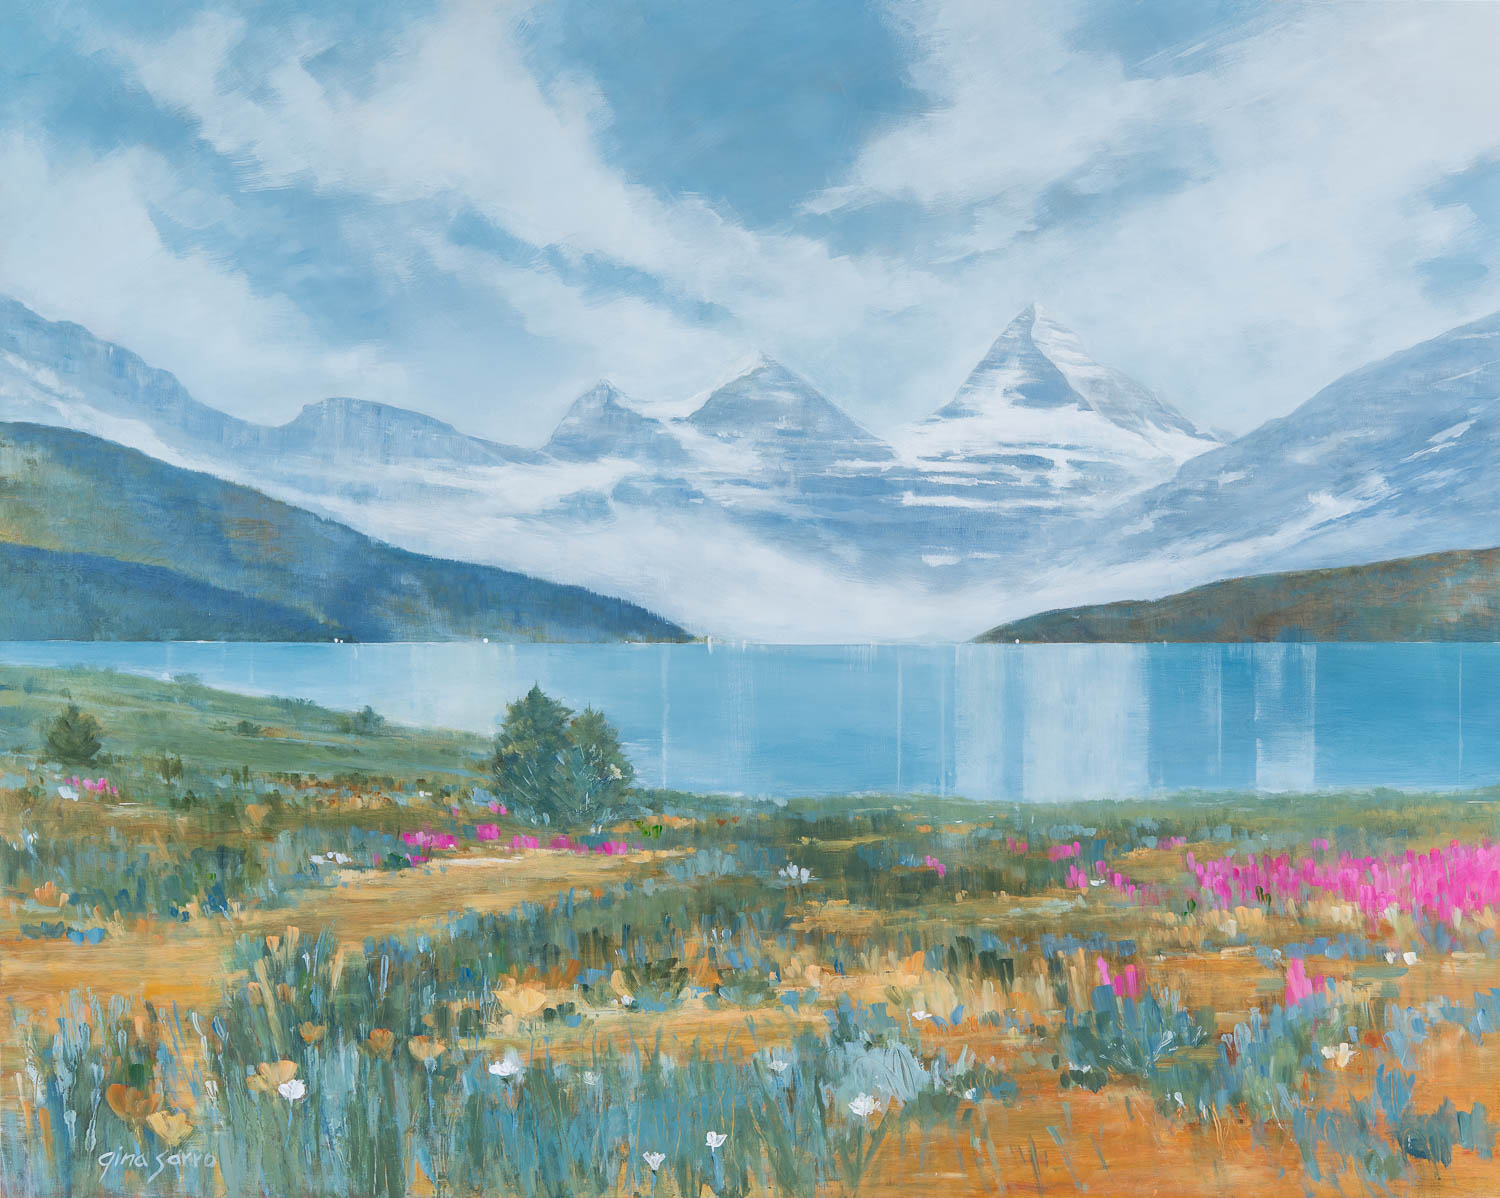 Quiet Echoes, acrylic landscape by Gina Sarro | Effusion Art Gallery + Cast Glass Studio, Invermere BC